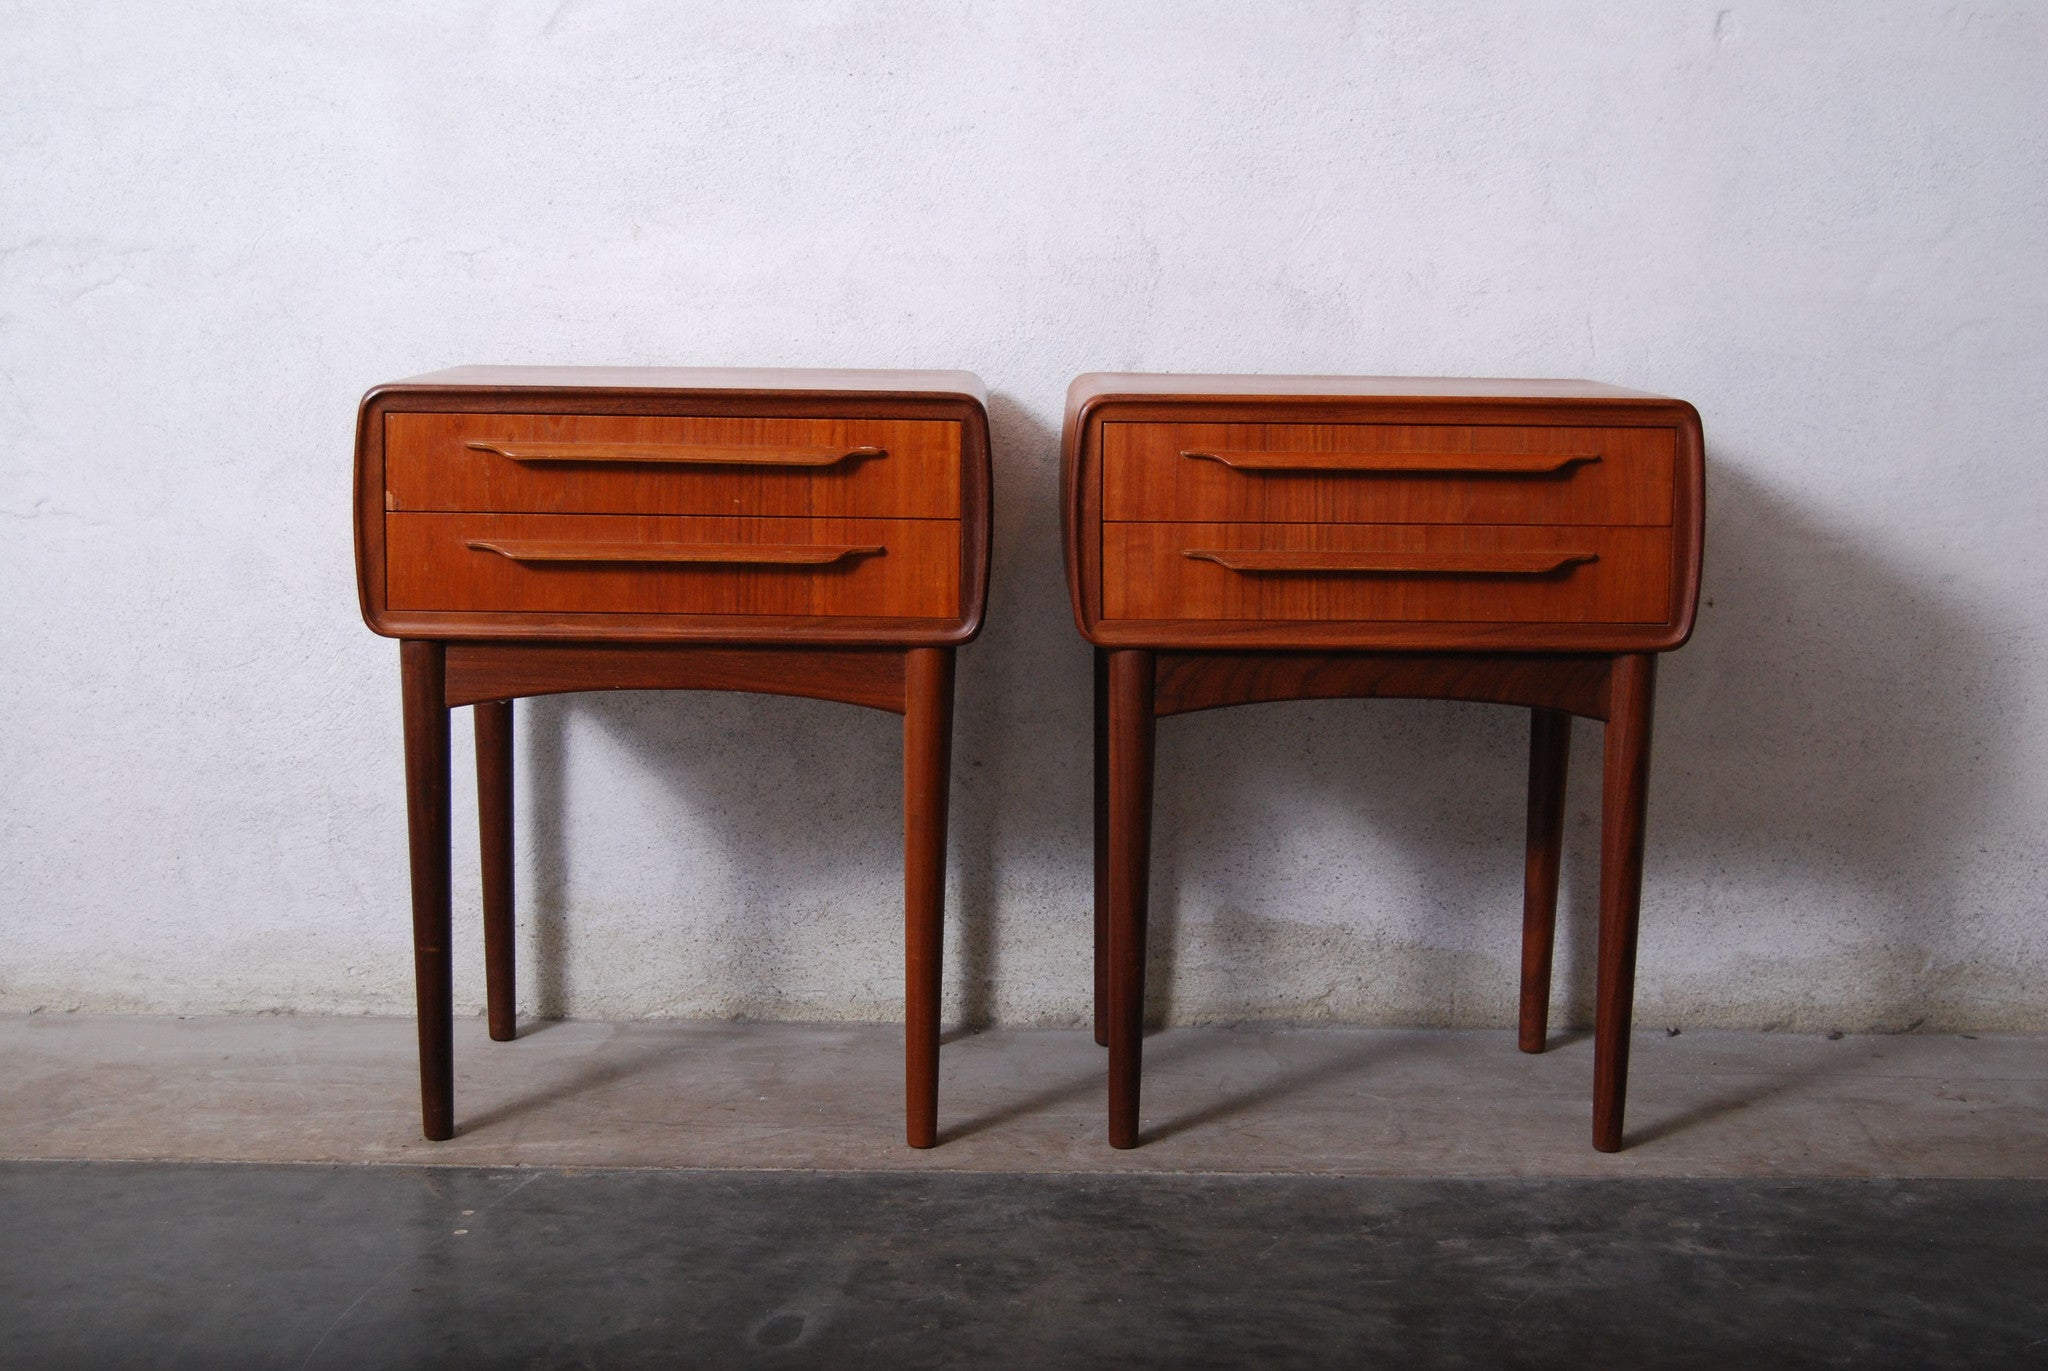 Pair of bedside tables by Johannes Andersen